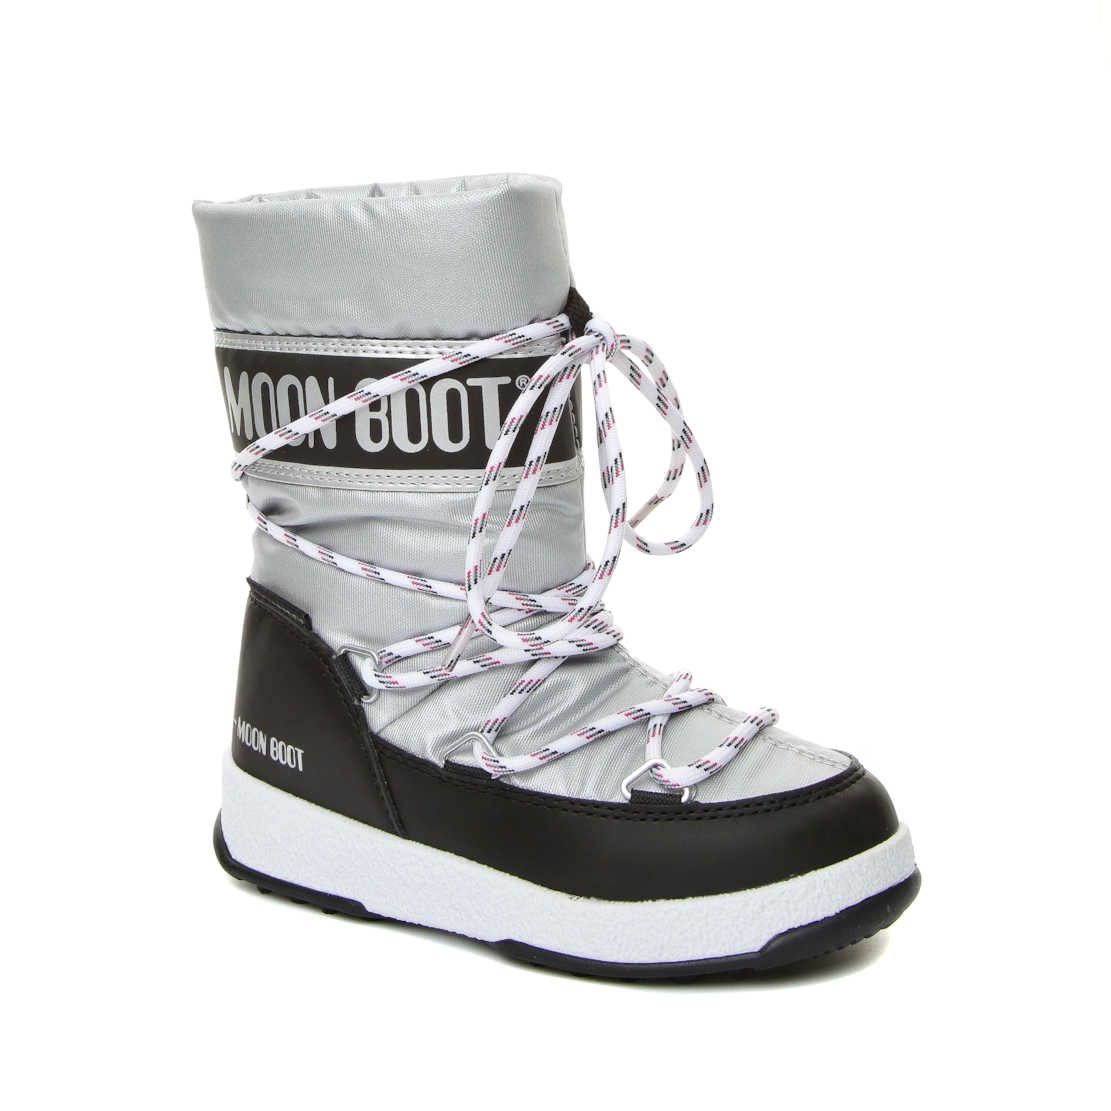 Moon Boot Silver Boys Snow Boots 34051300-001 We Sport Jr Wp Silver-Black classic after-ski boots